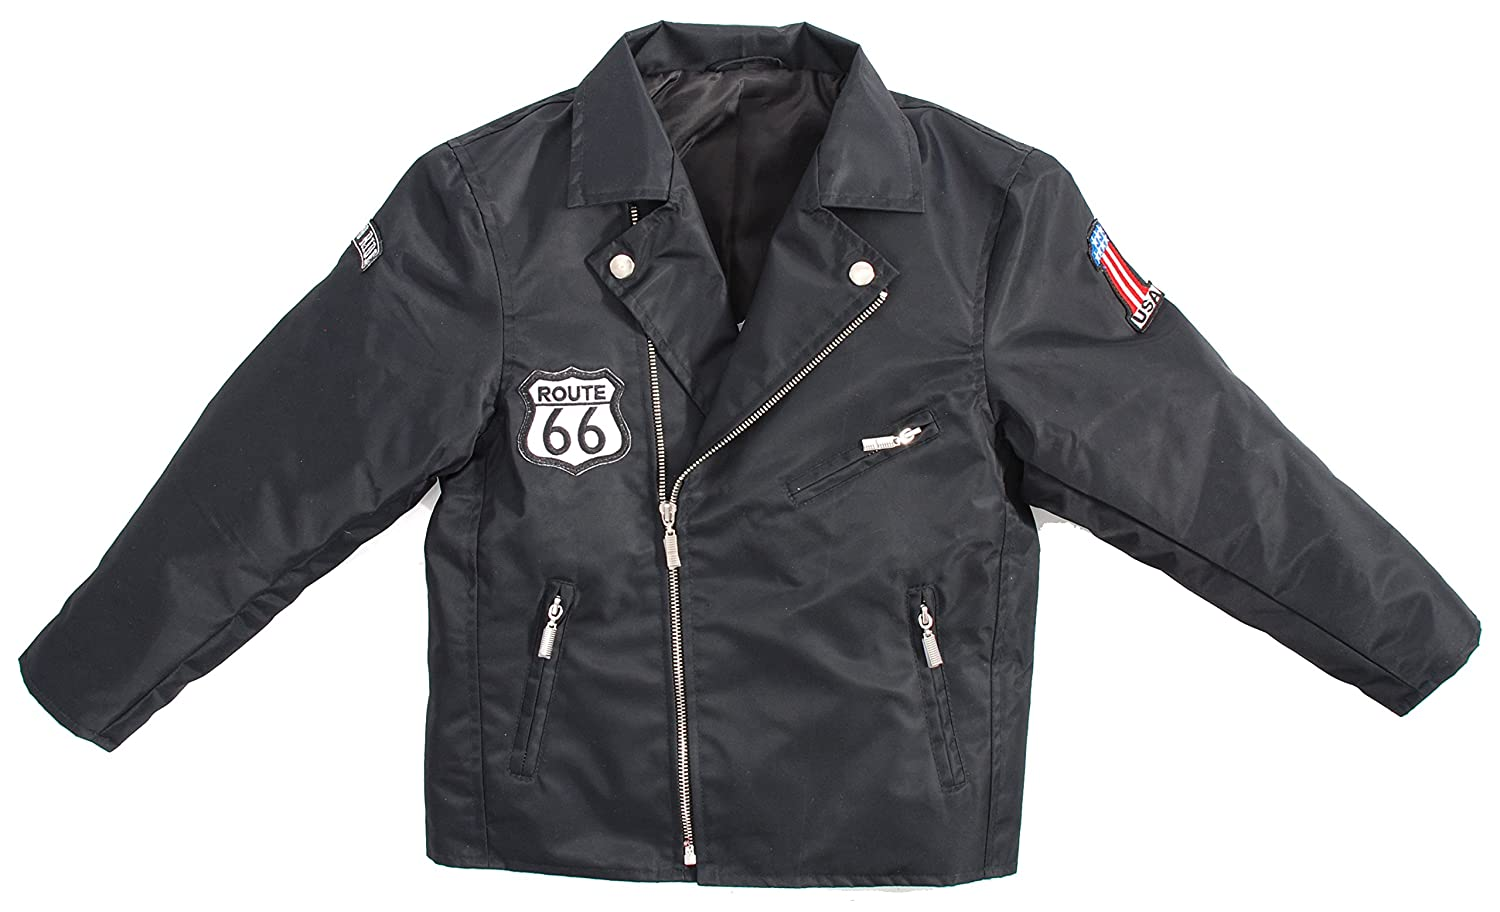 Up and Away Boys Motorcycle Jacket